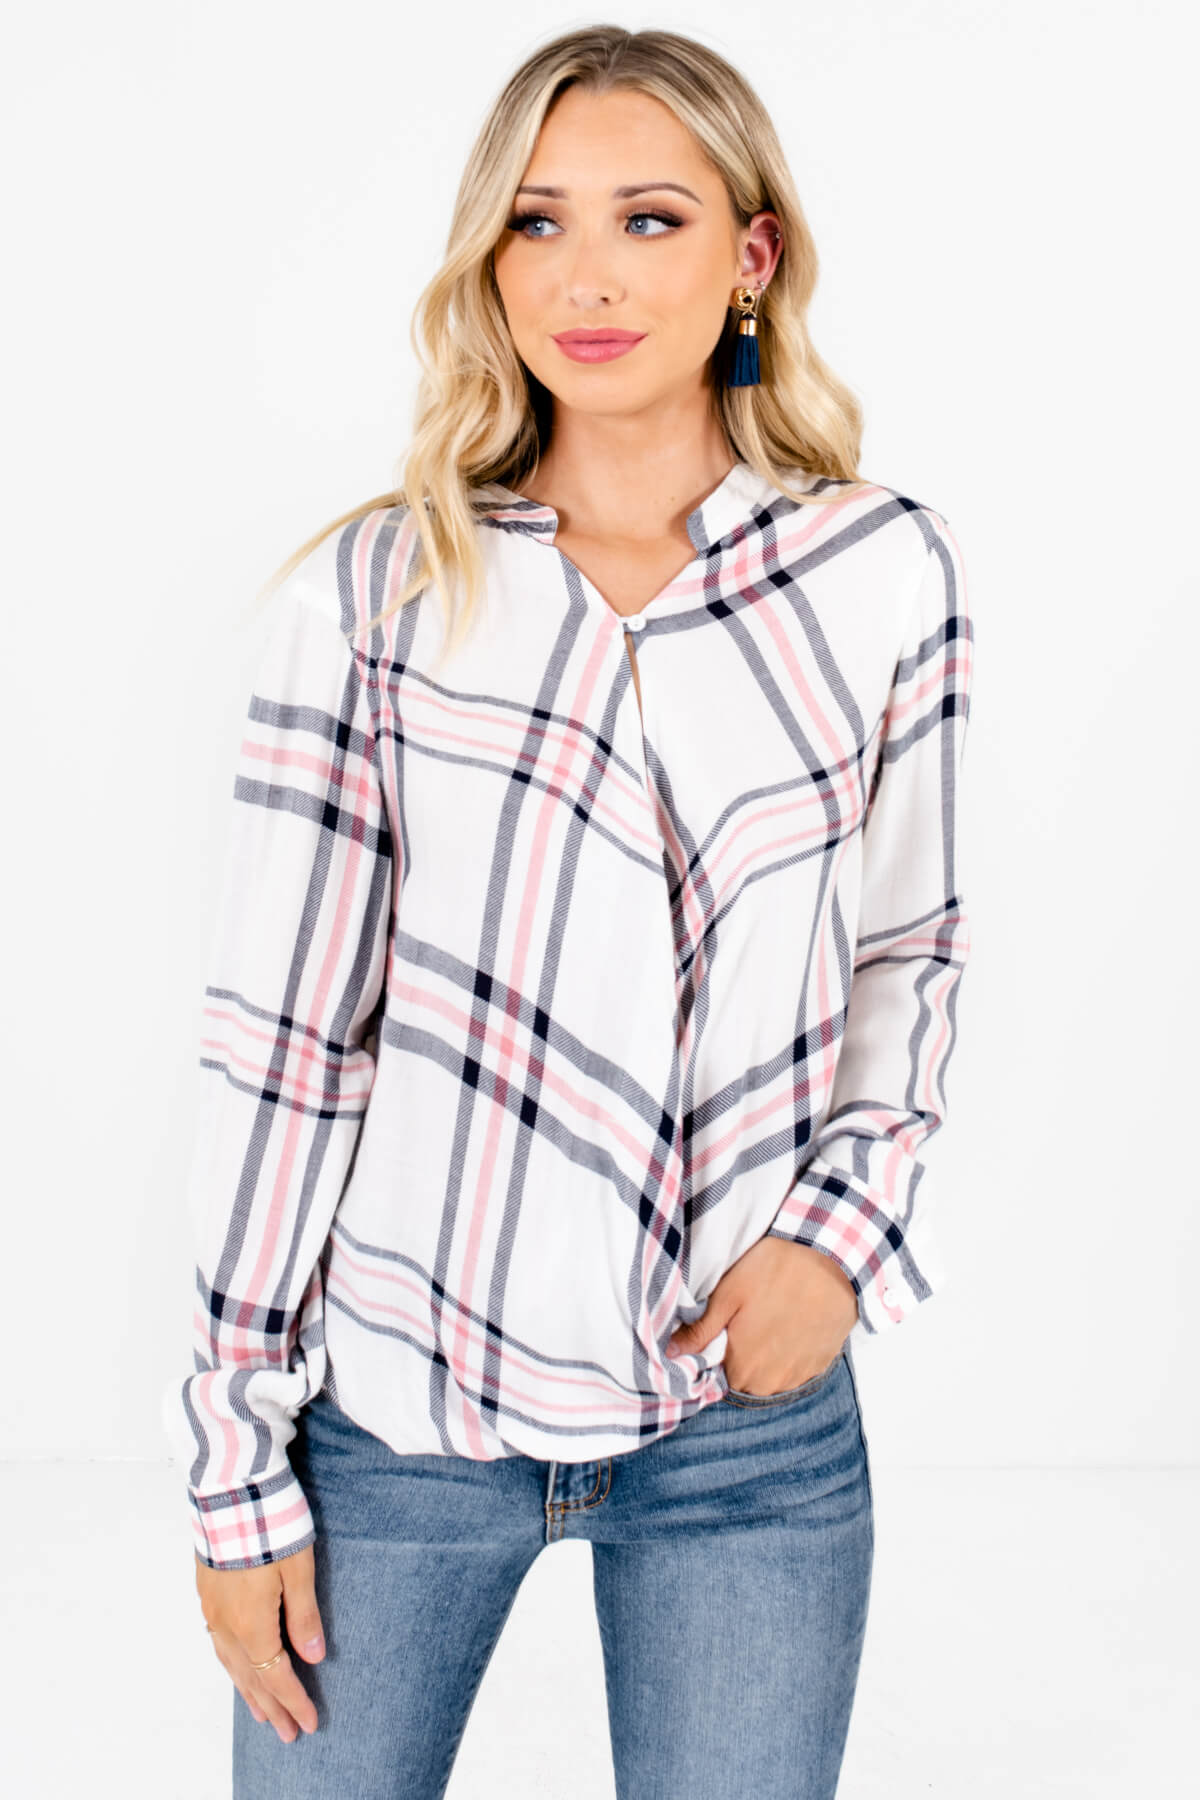 White Pink and Navy Plaid Patterned Boutique Tops for Women